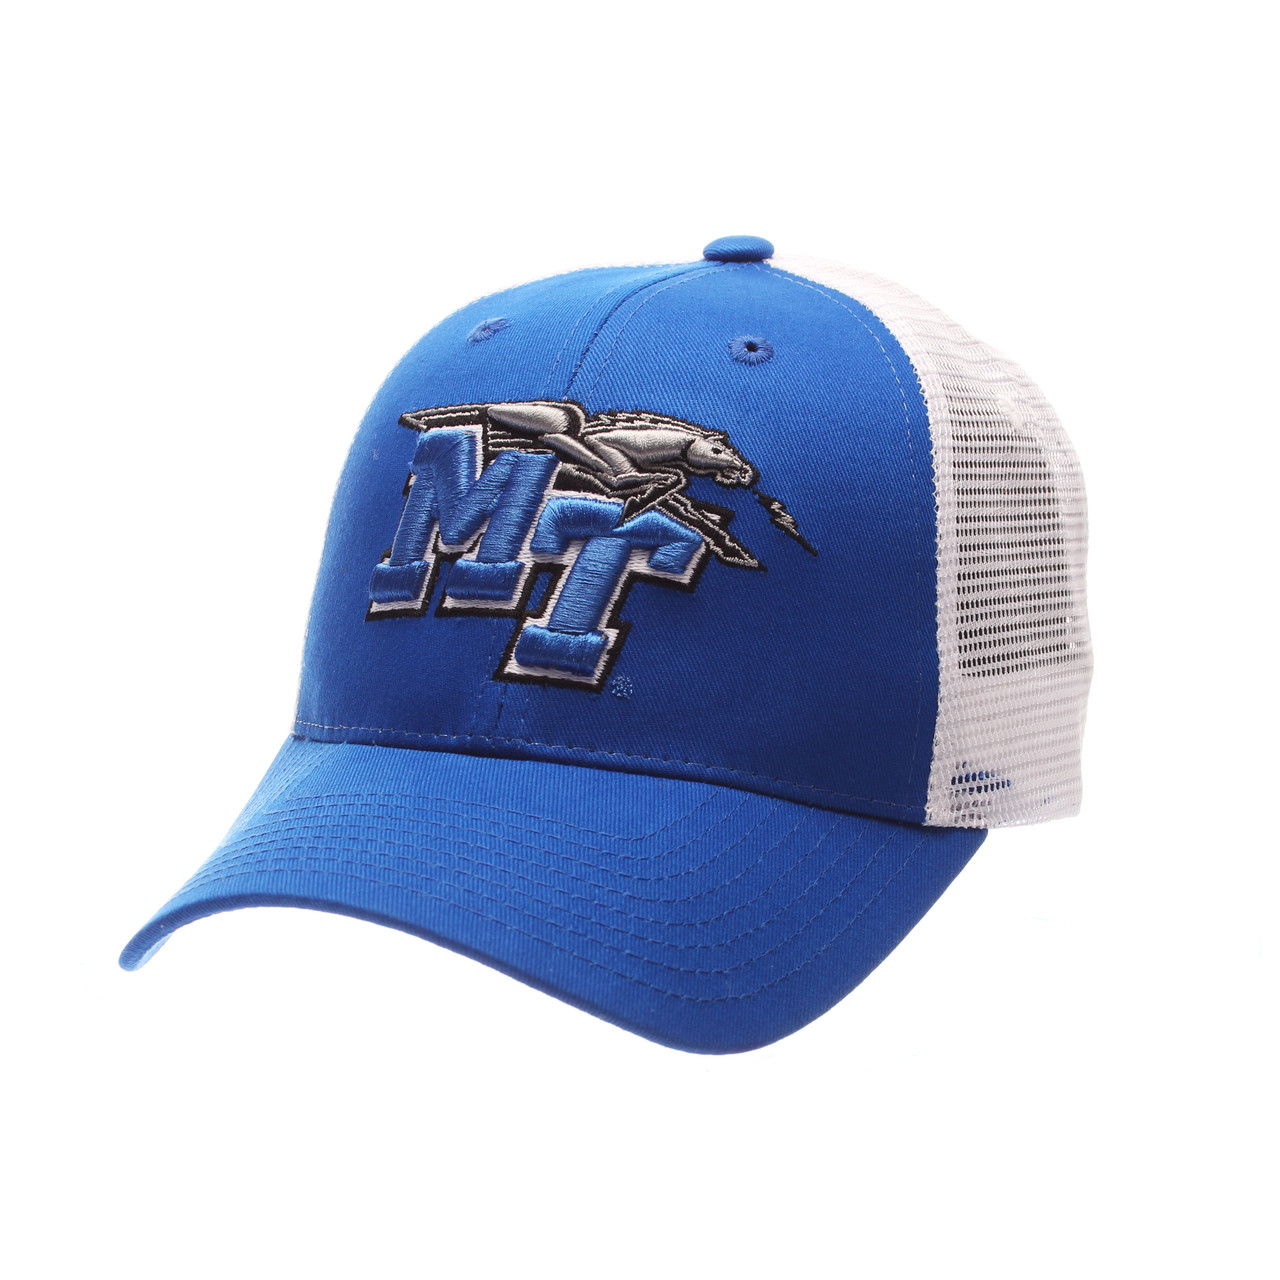 a6a729277885f Middle Tennessee State Men s Zephyr Adjustable Trucker Hat ...